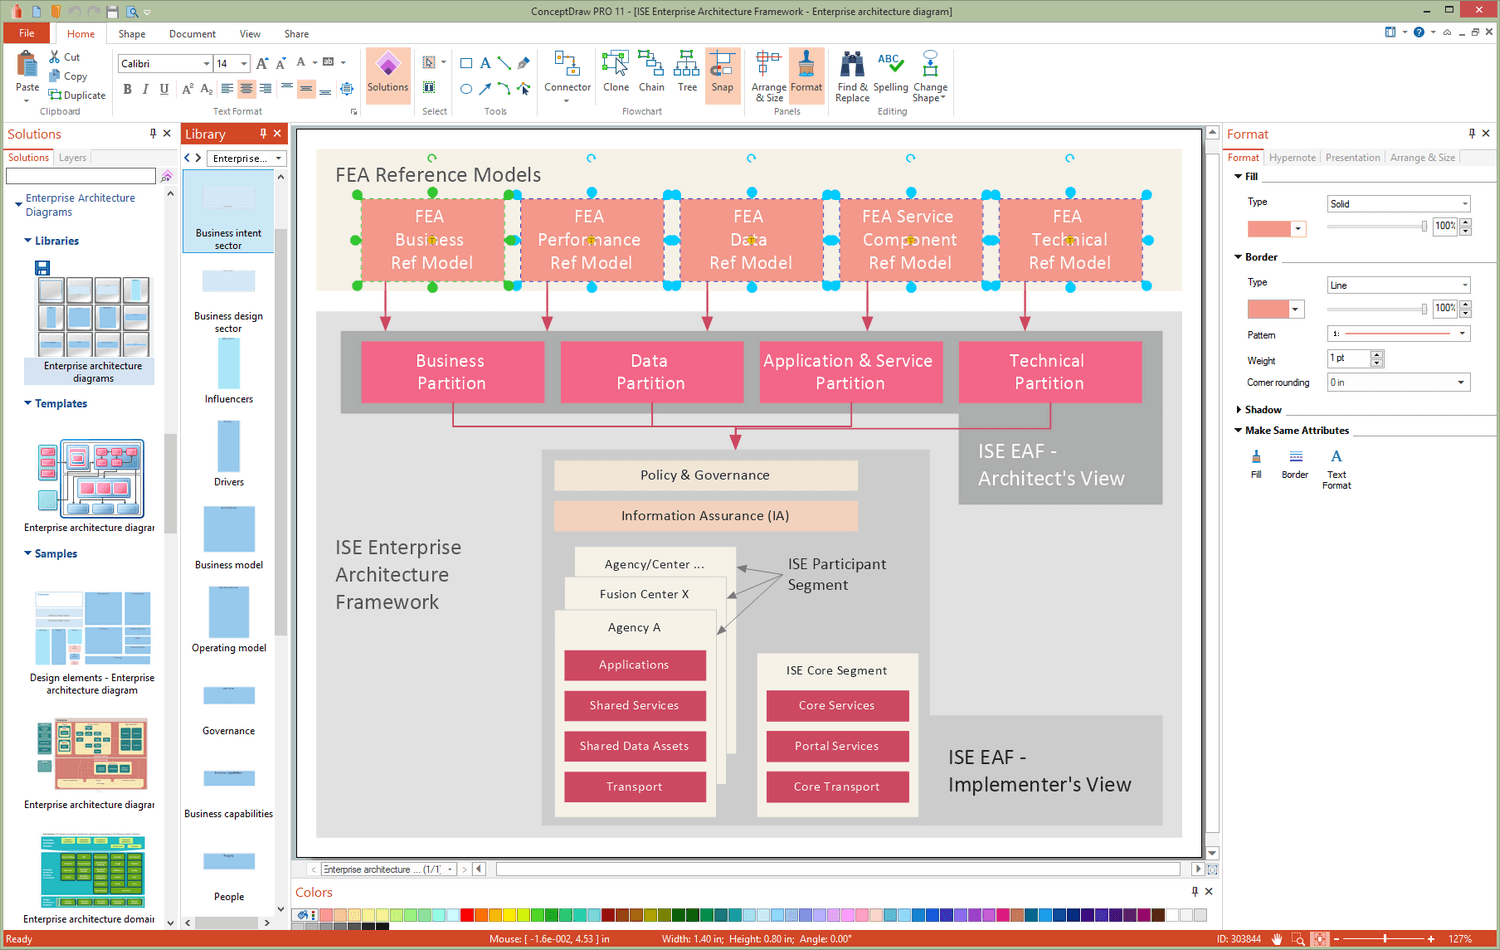 enterprise architecture diagrams solution | conceptdraw